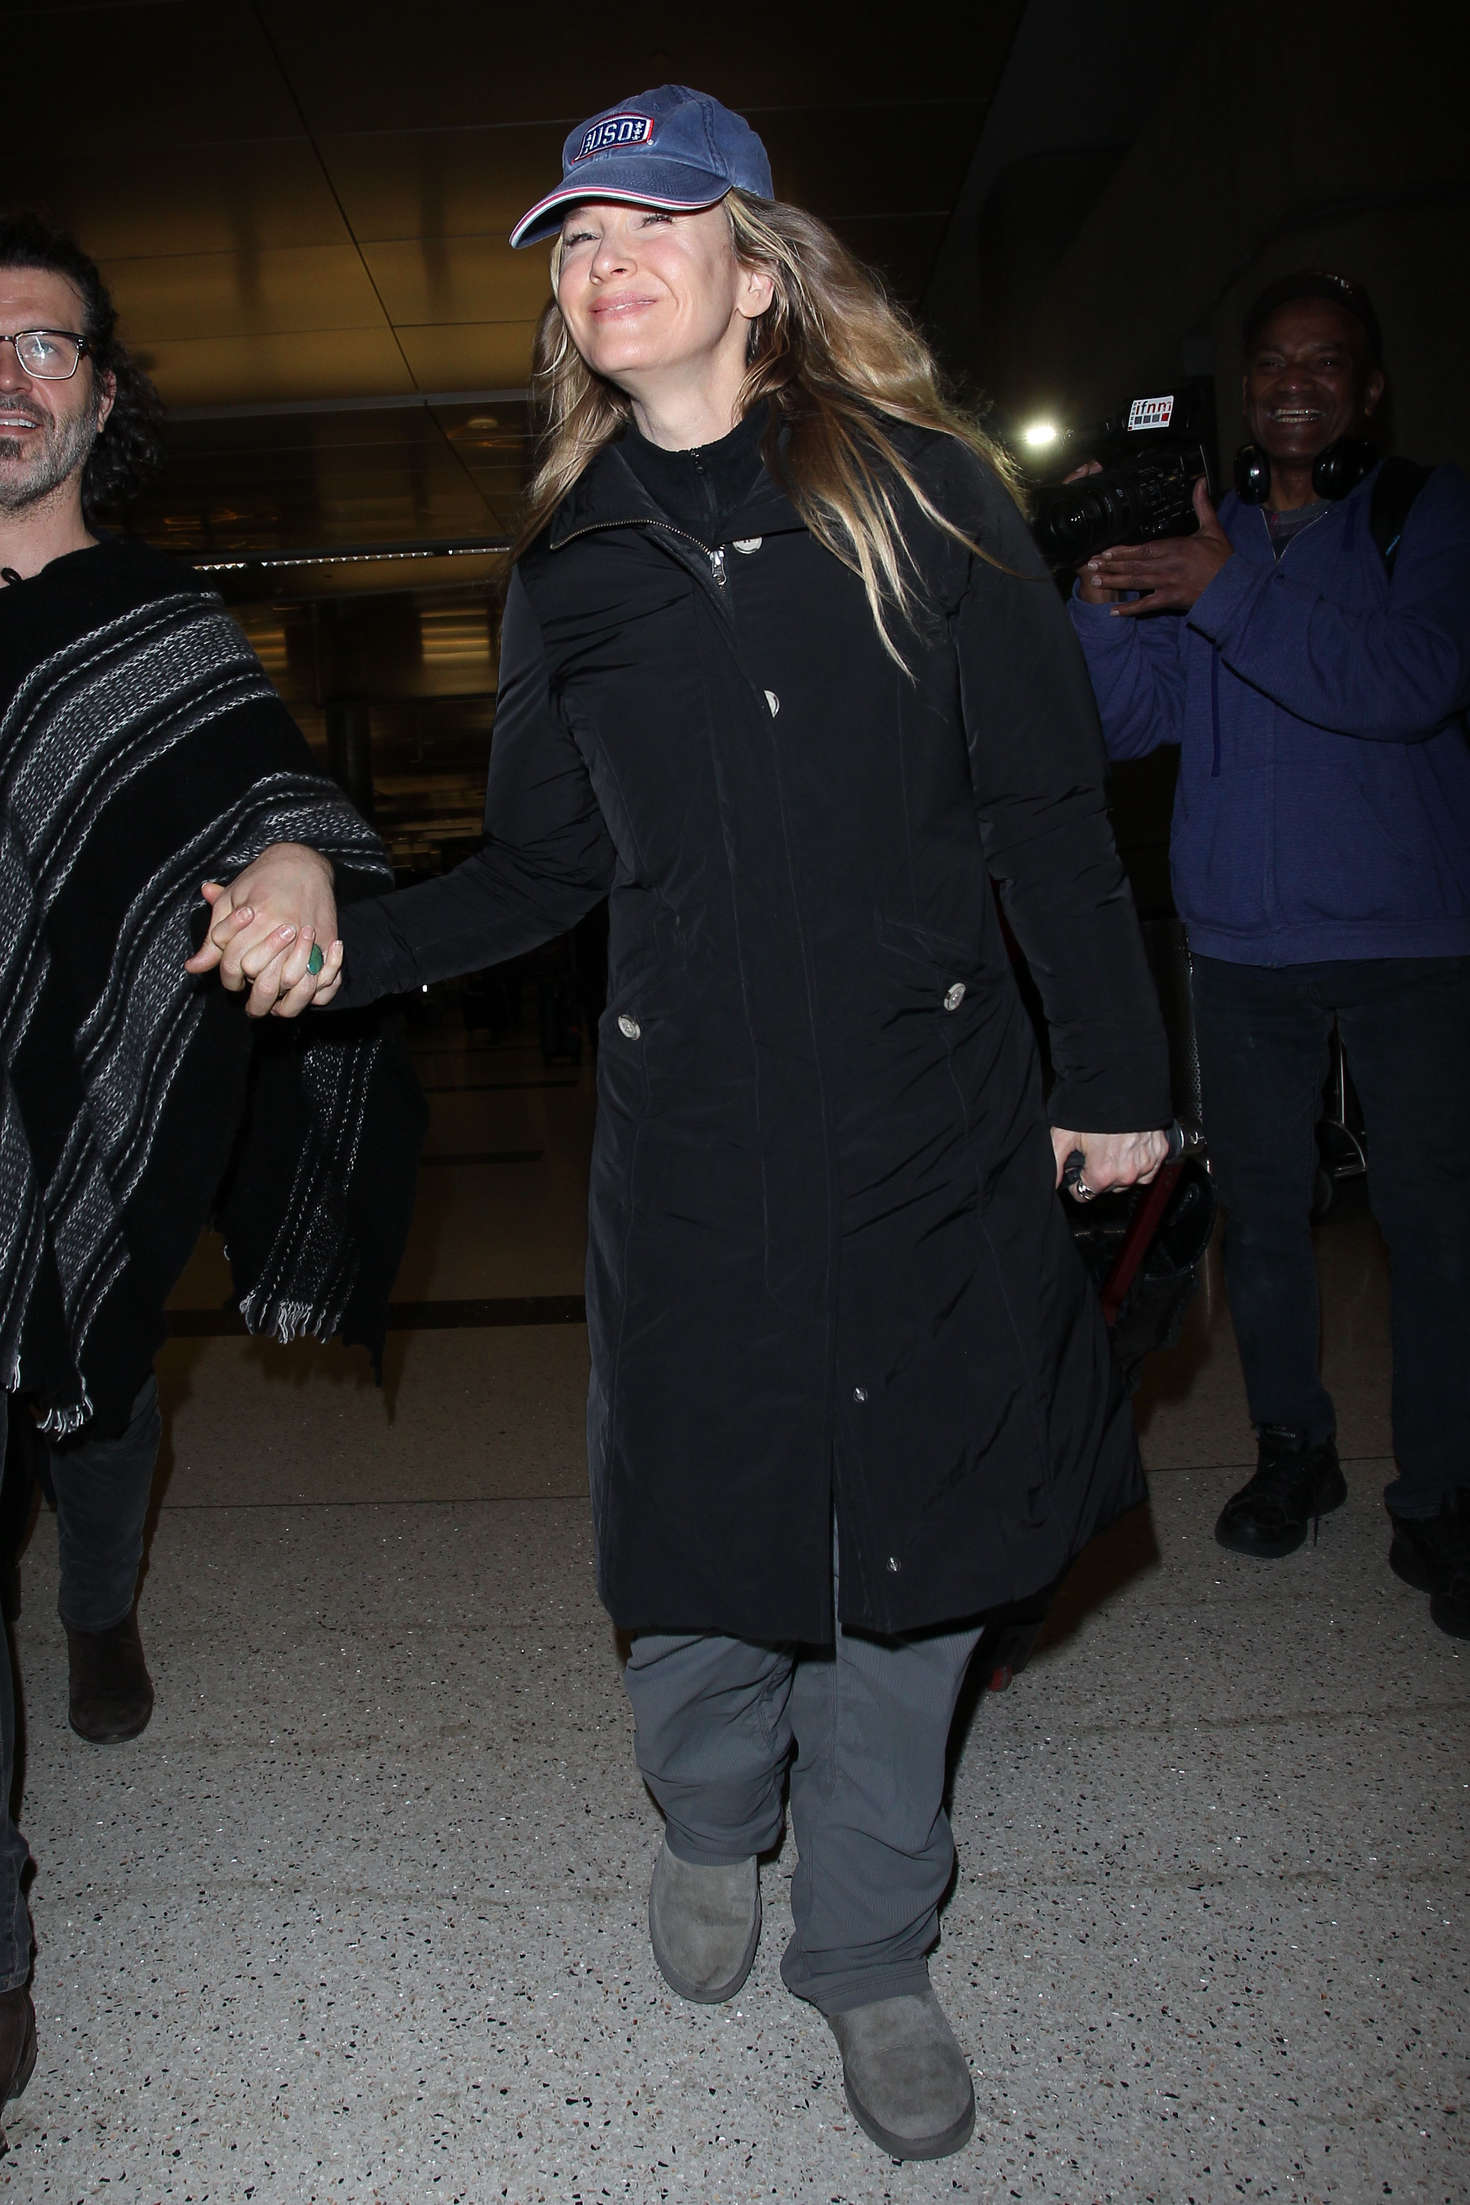 Renee Zellweger at LAX Airport in Los Angeles